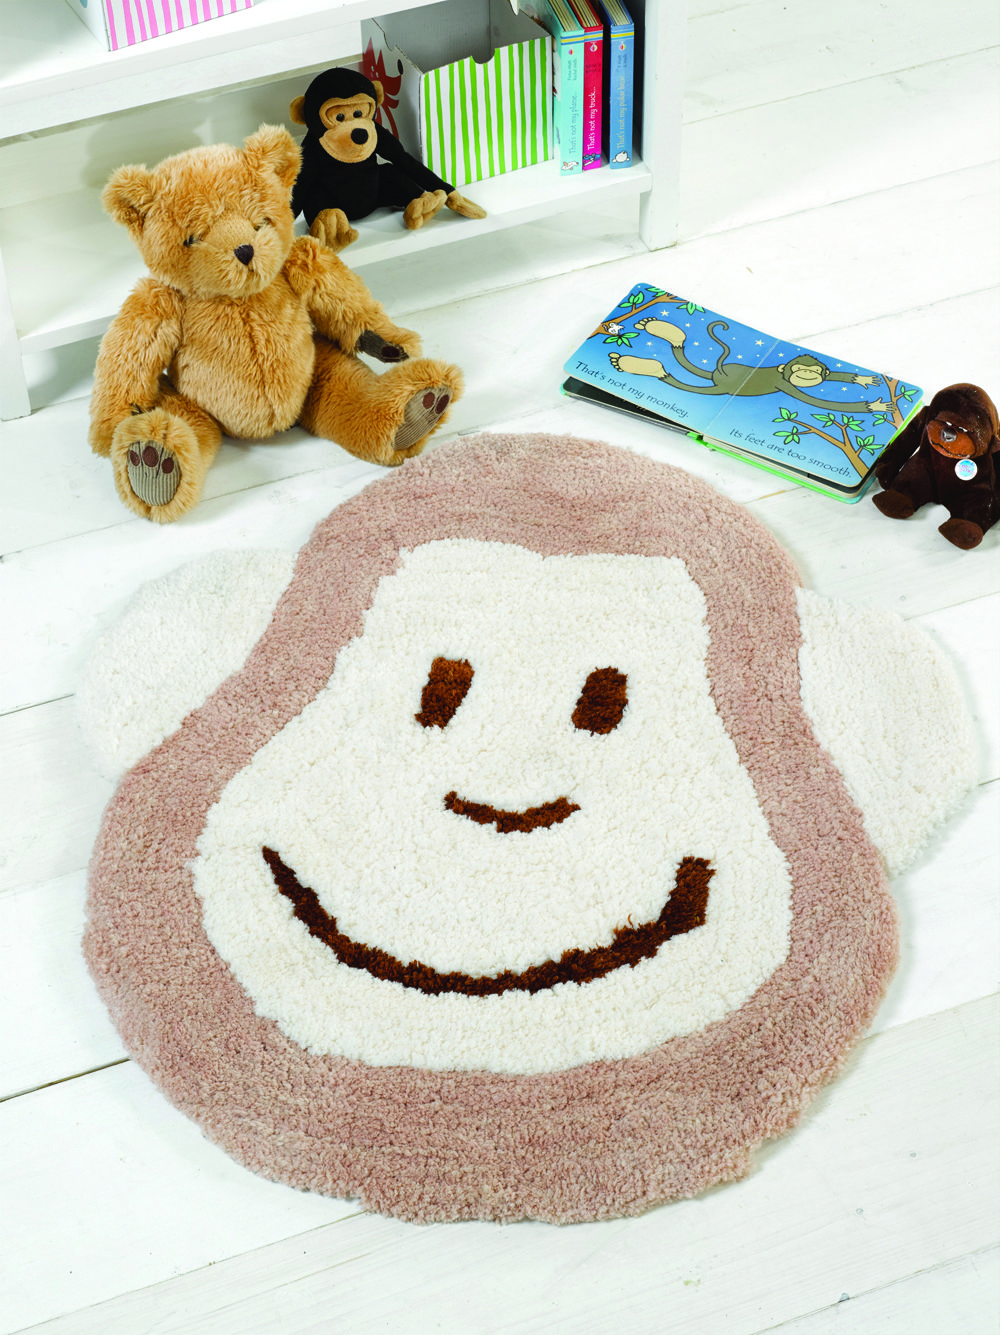 Cute Monkey Rug For Your Nursery Or As A Neutral Baby Present Http Bit Ly 1otvoui